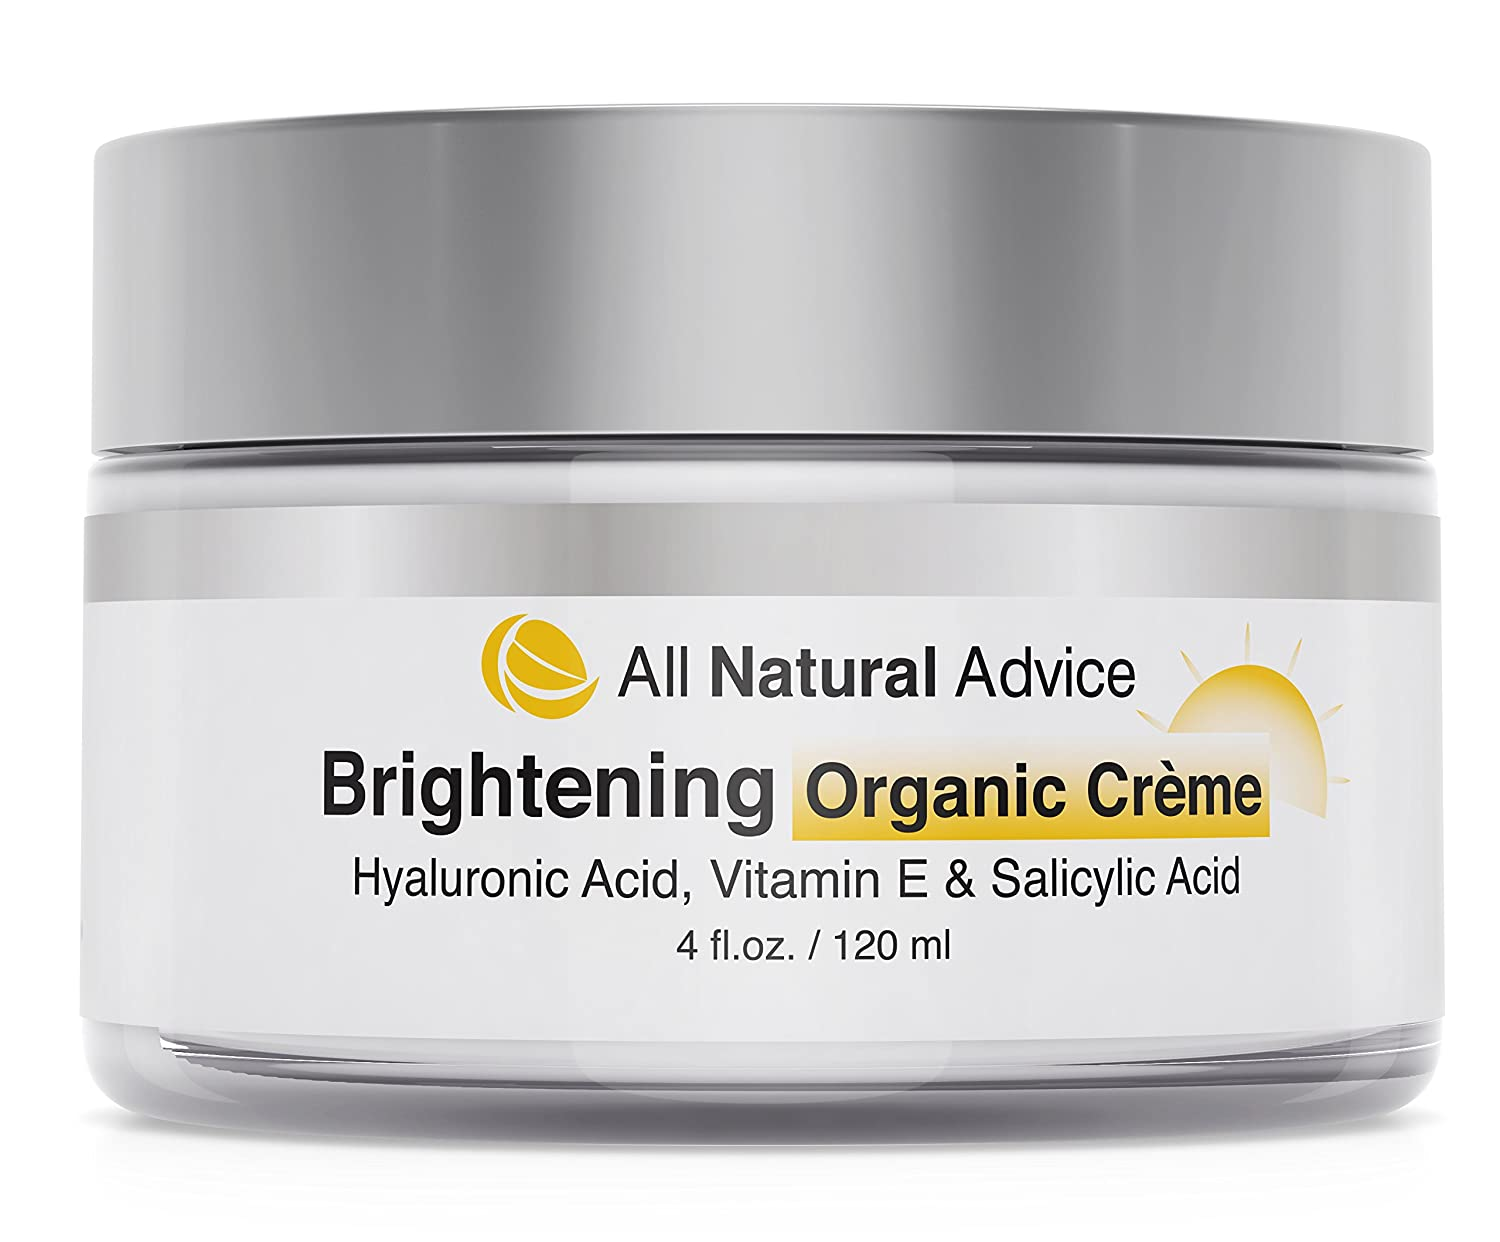 All Natural Advice Brightening CREAM with Hyaluronic & Kojic Acid | Canadian Made | Natural Skin Whitening Cream for Discoloration, Hyperpigmentation | Diminish Blemishes, Tone Skin, Reveal Radiance | 120 ml | DOUBLE THE SIZE